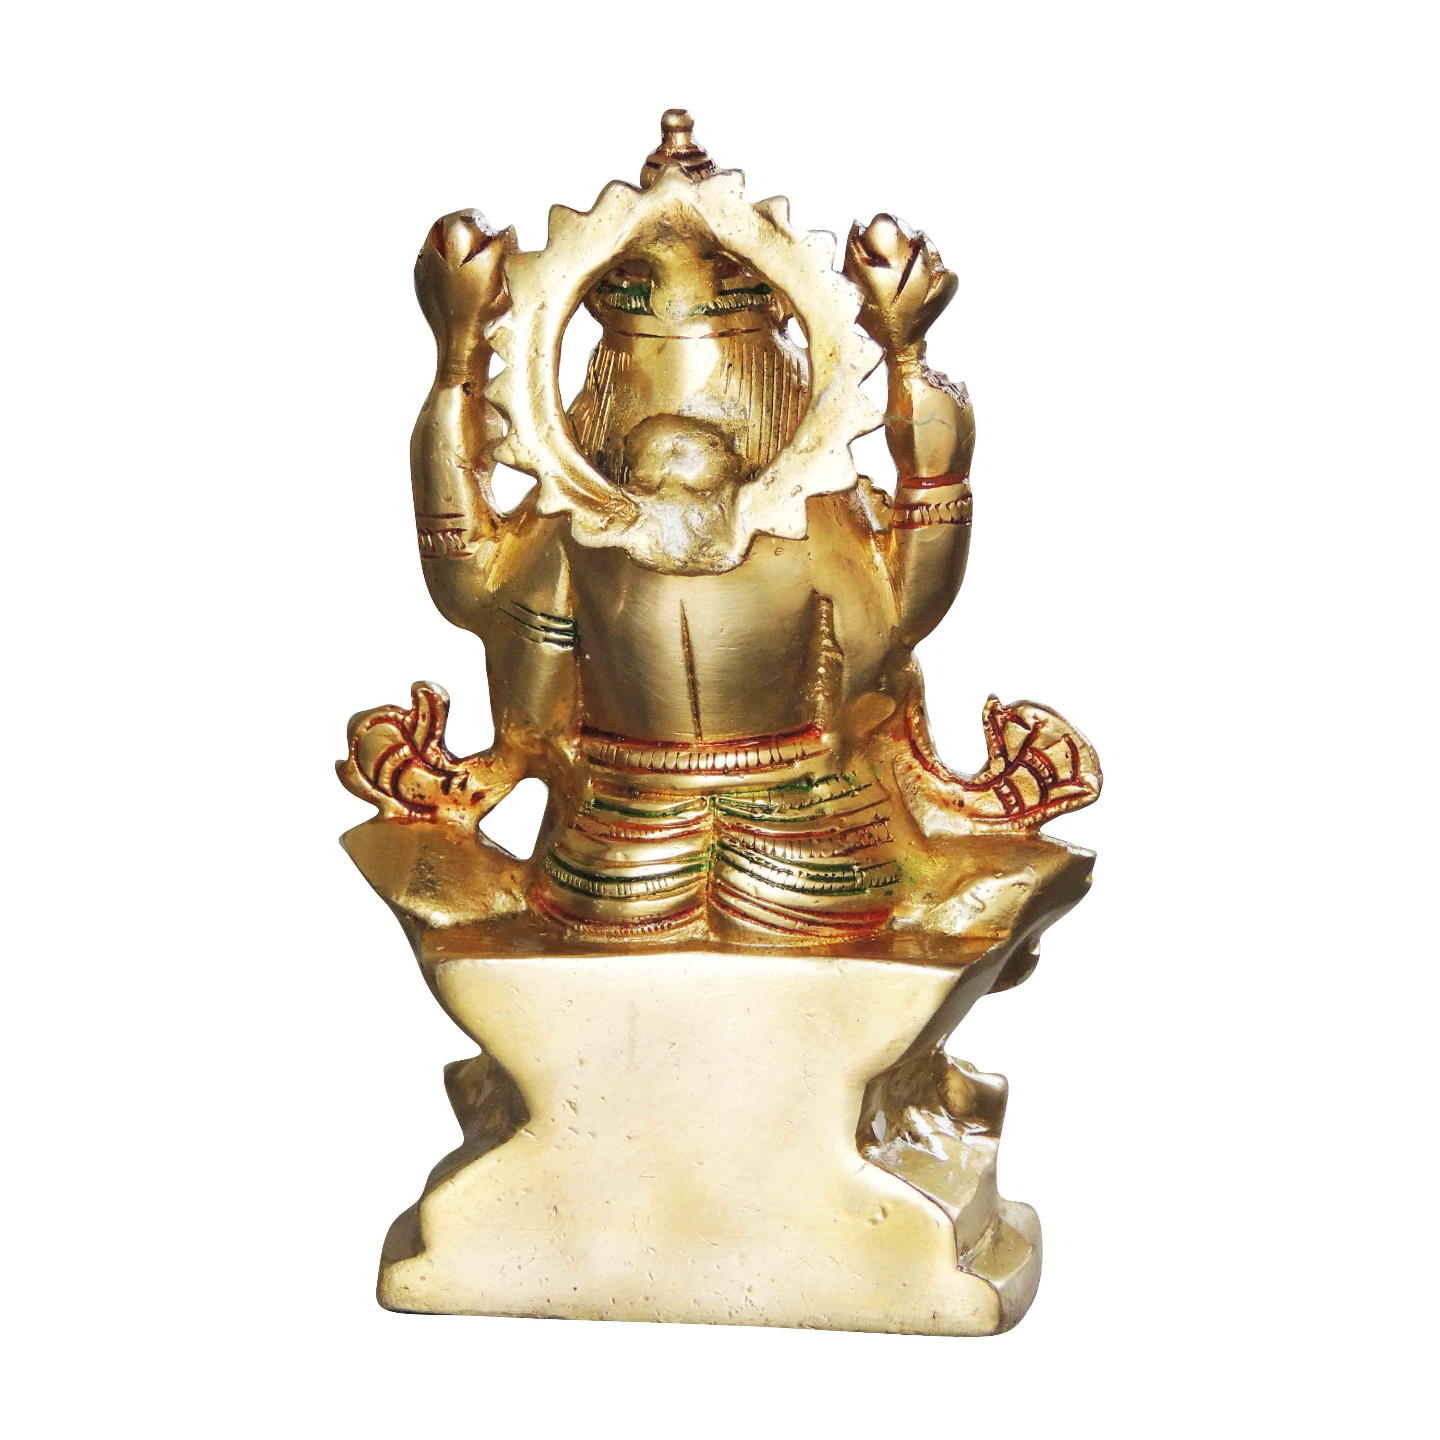 Brass Laxmi Statue Murti Idol in MultiColour Lacuquer Finish - 6.2 inch (BS1064 L)